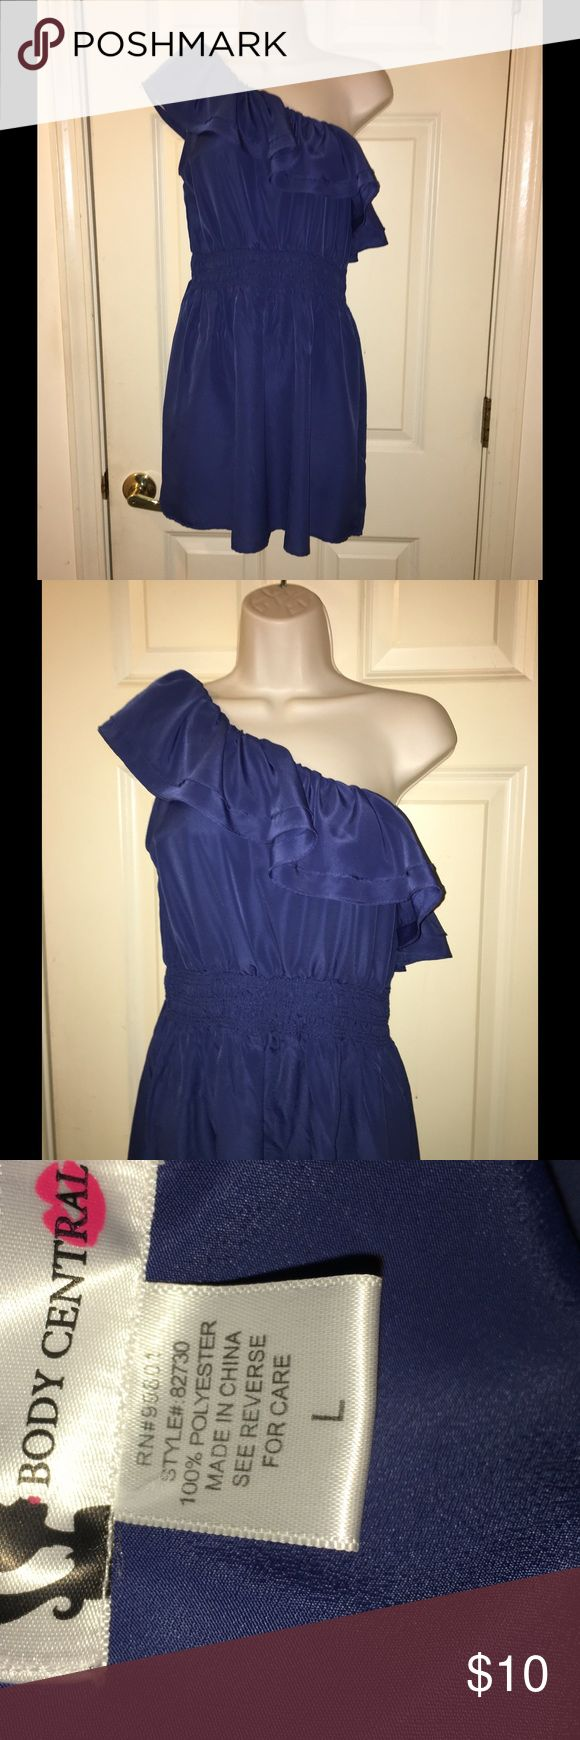 One Shoulder Ruffle Dress By Body Central Large Blue dress with a single shoulder ruffle.  Elastic waist.  Mid thigh length.  Size large.  From Body Central.  Great condition.  Important:   All items are freshly laundered as applicable prior to shipping (new items and shoes excluded).  Not all my items are from pet/smoke free homes.  Price is reduced to reflect this!   Thank you for looking! Body Central Dresses Mini